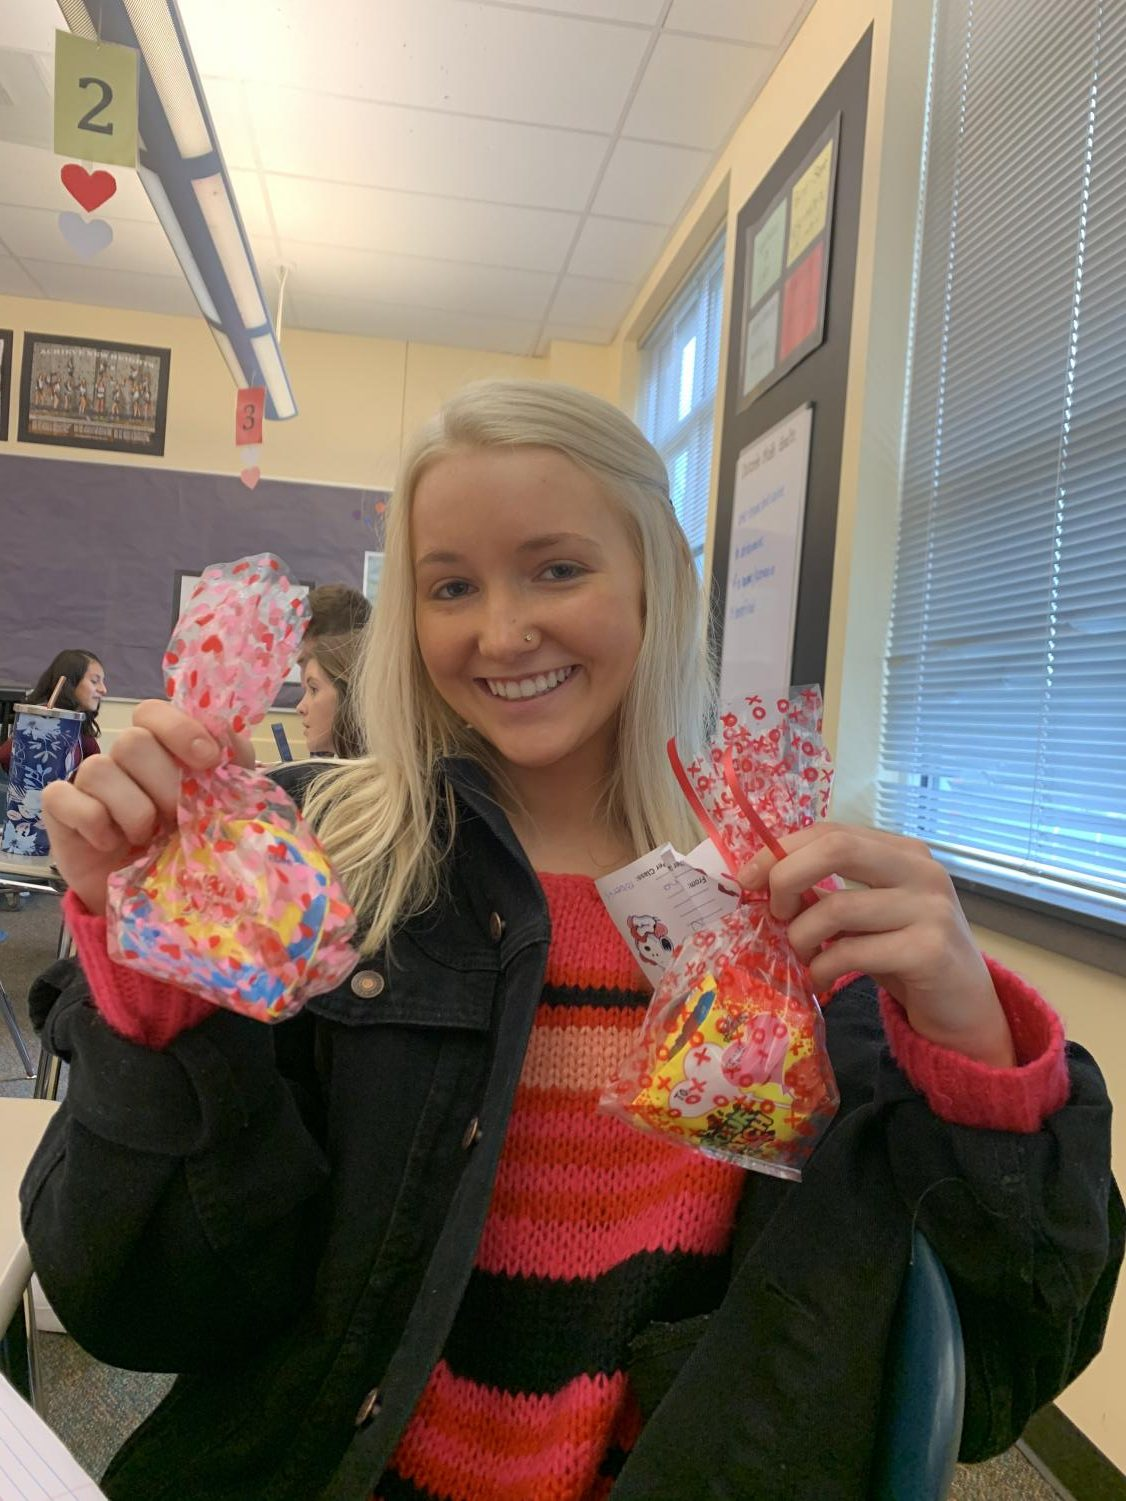 Senior Catie Stamnes holding two candygrams she recieved this Valentine's Day. Photo credit Emily Swenson.